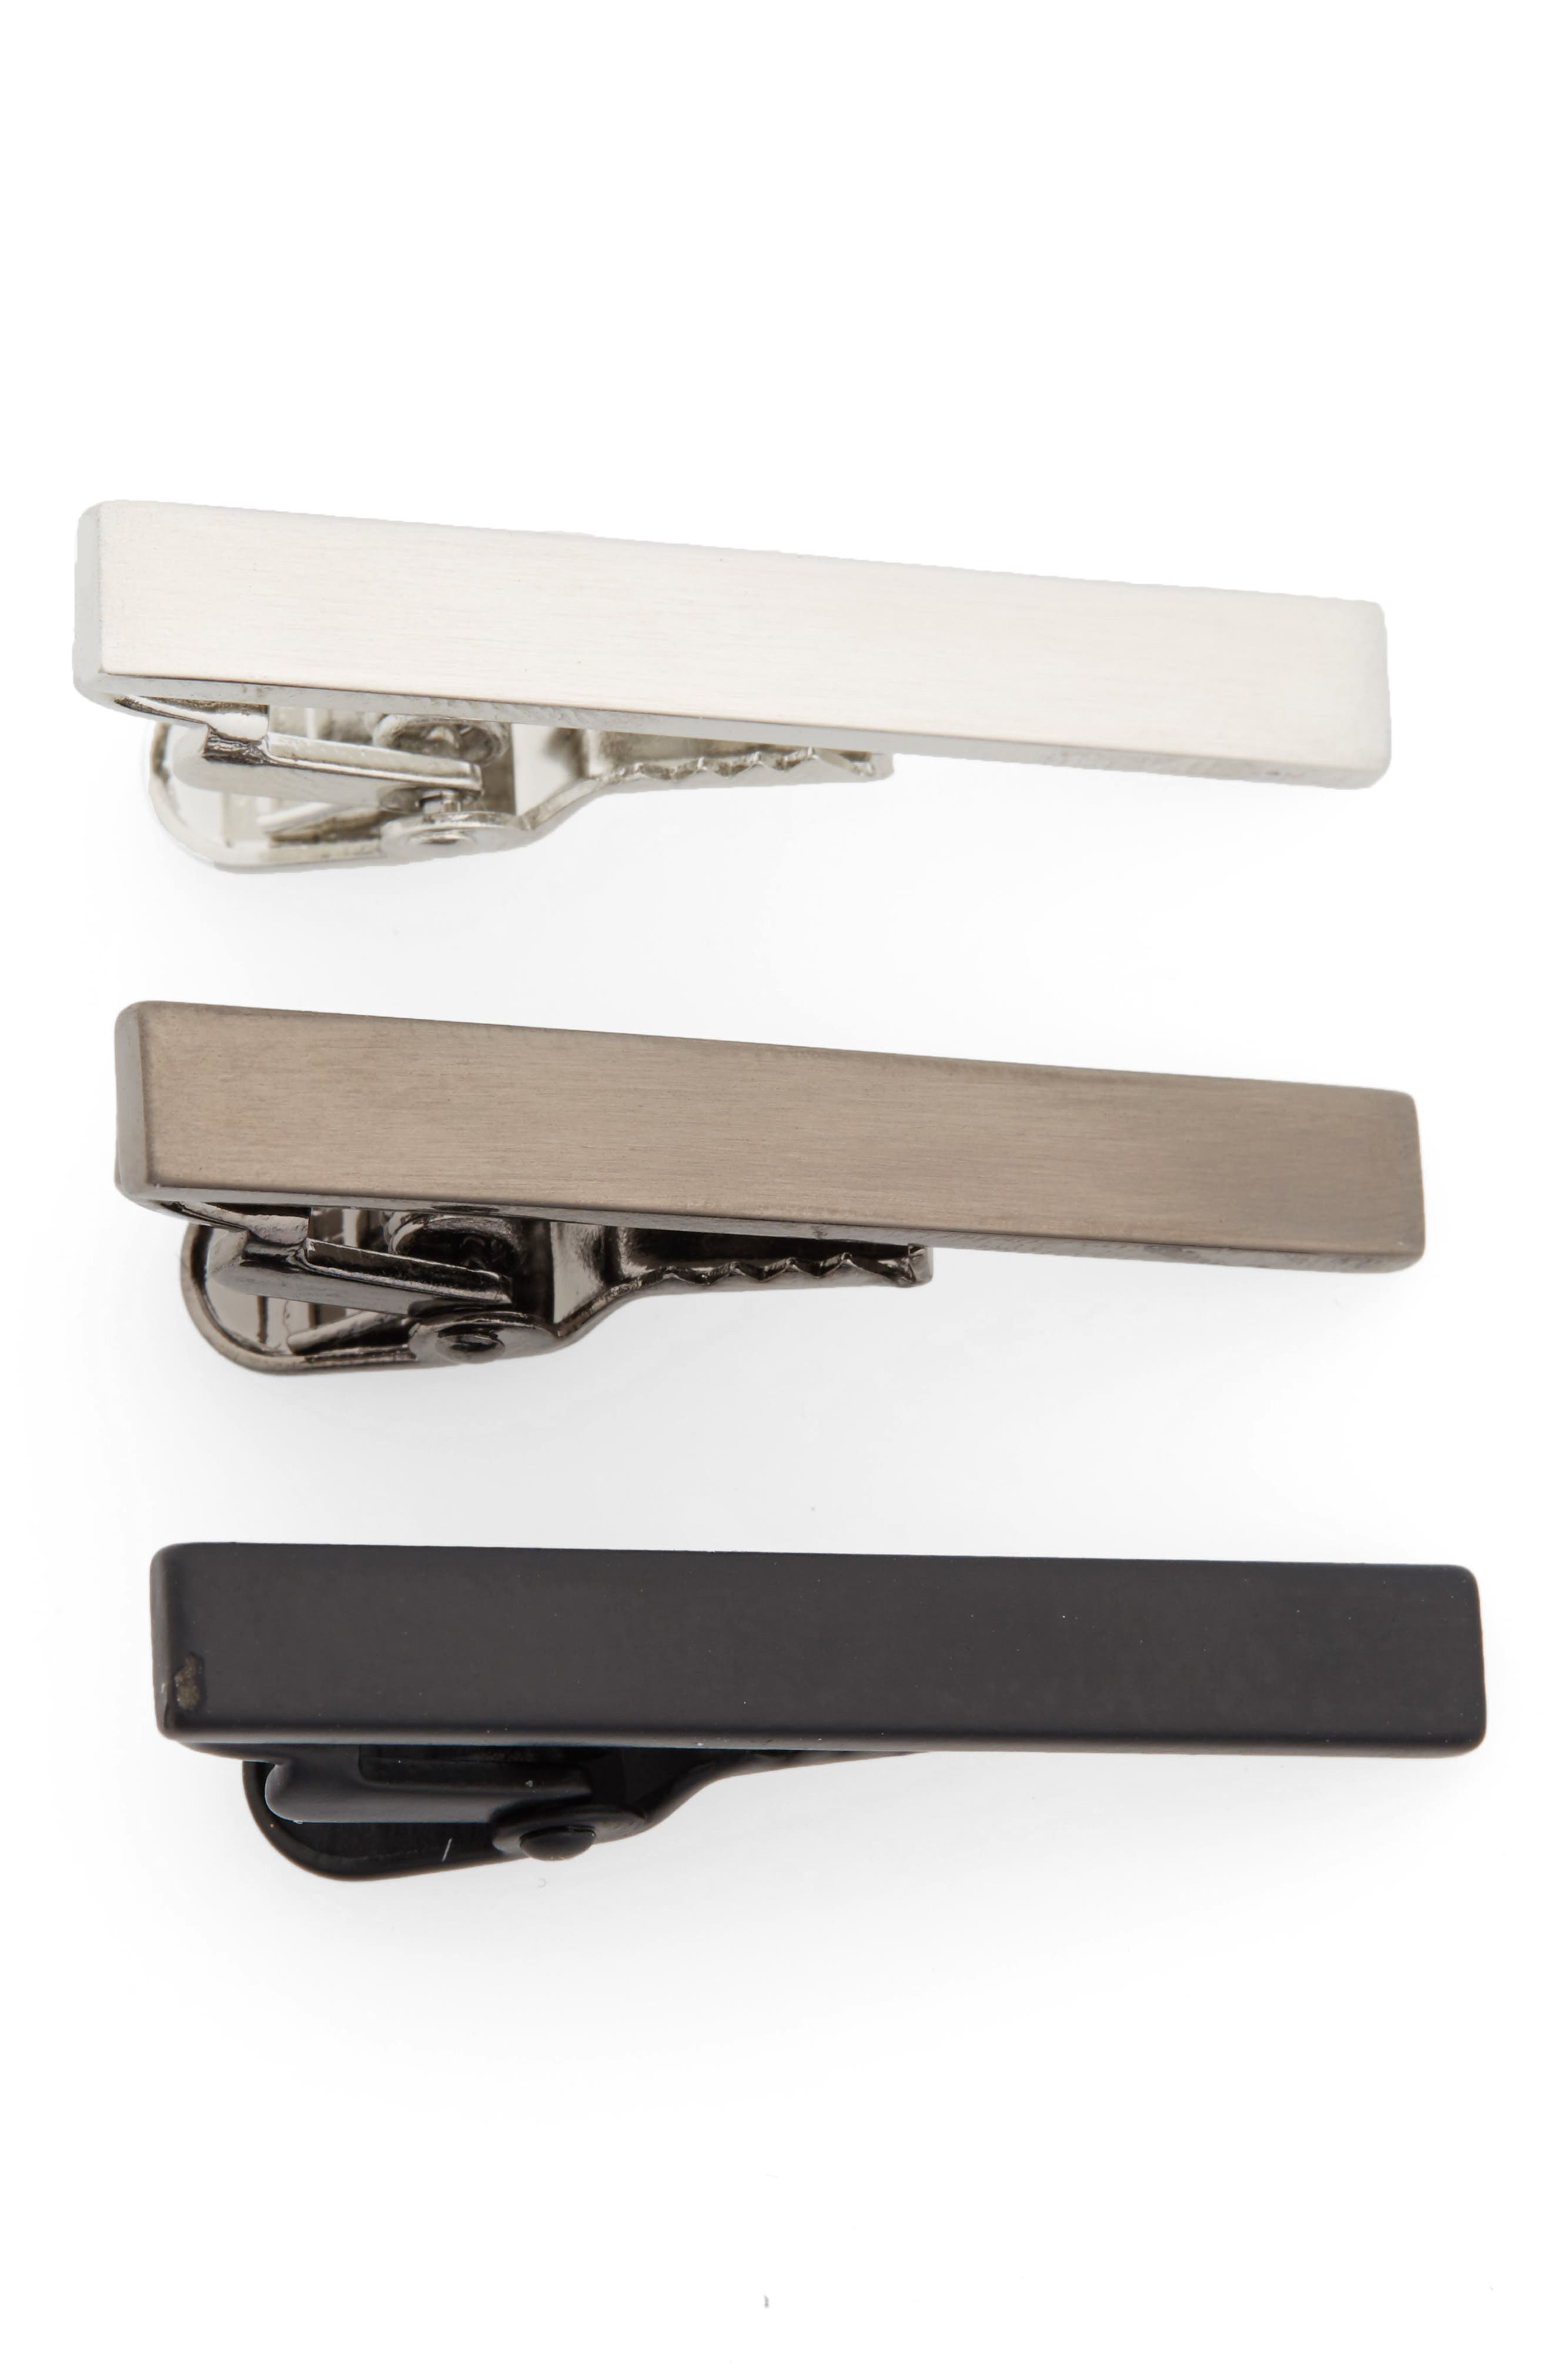 NORDSTROM MEN'S SHOP, 3-Pack Tie Bar Set, Main thumbnail 1, color, GUNMETAL/ SILVER/ BLACK